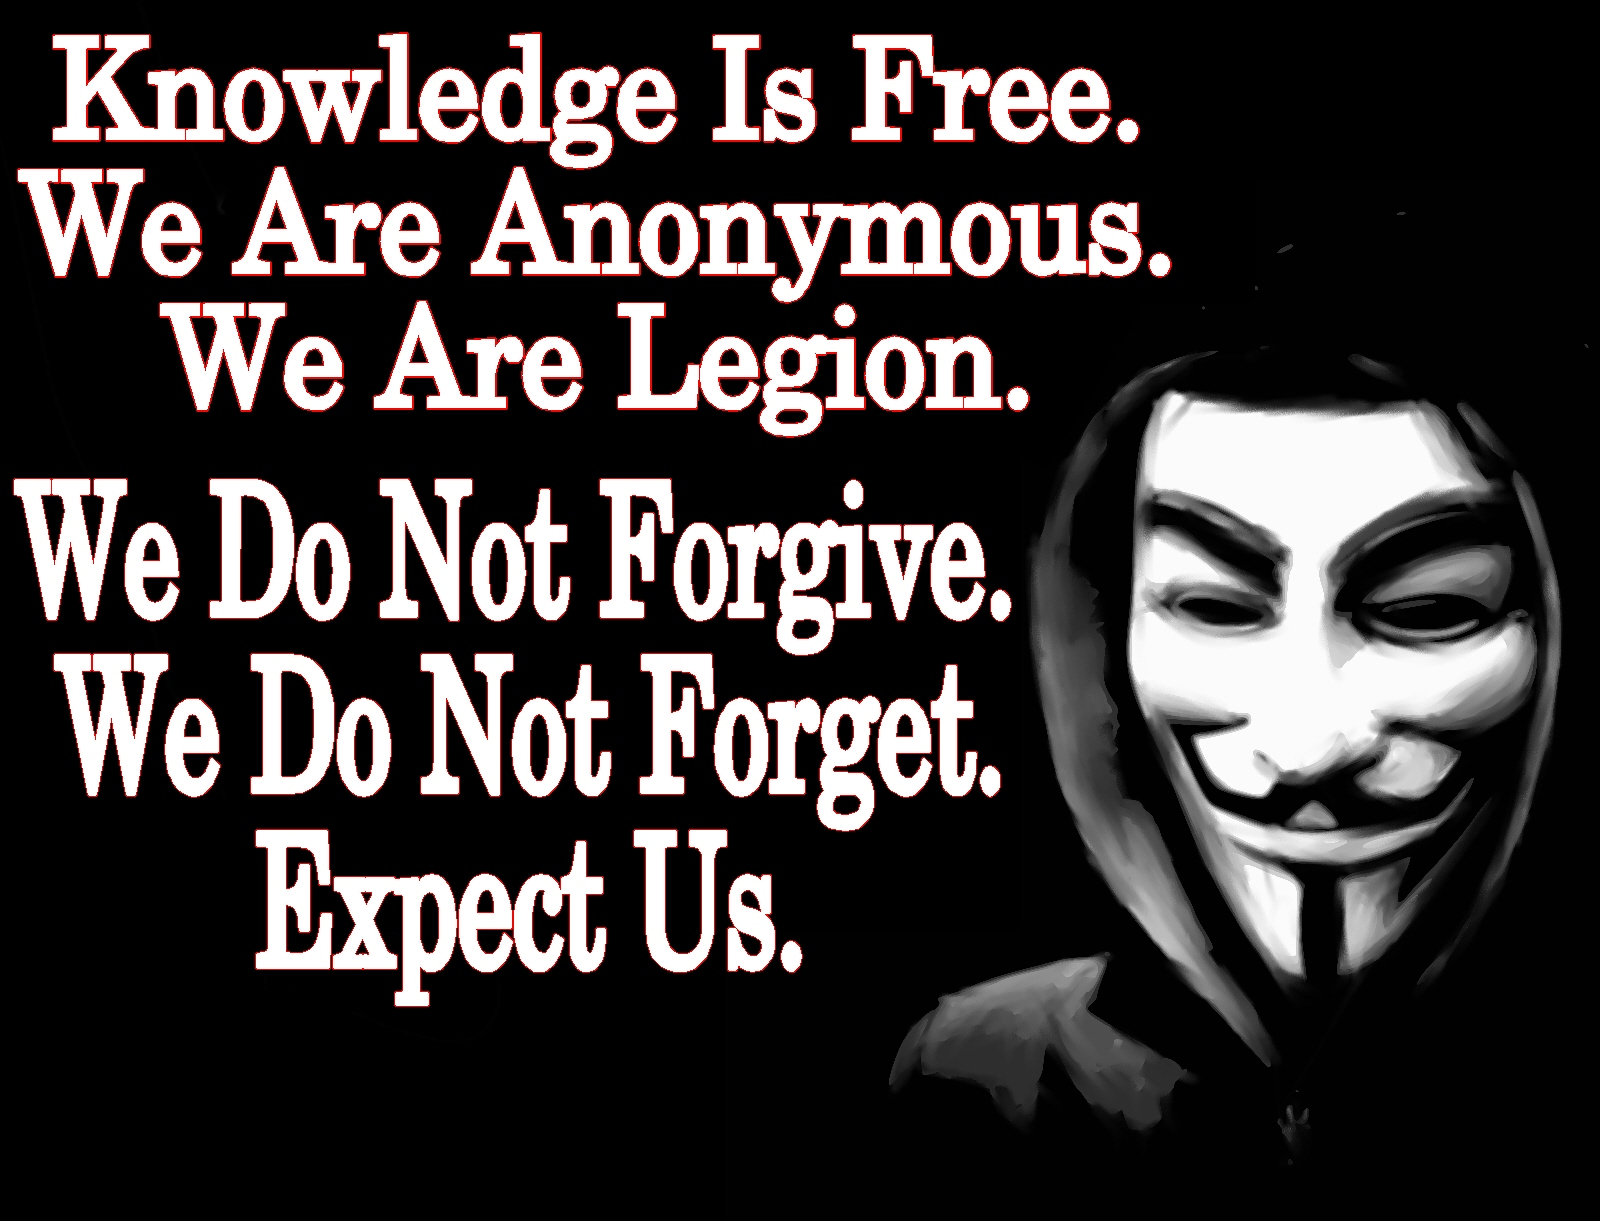 12-Year-Old Hacked Government Sites for Anonymous